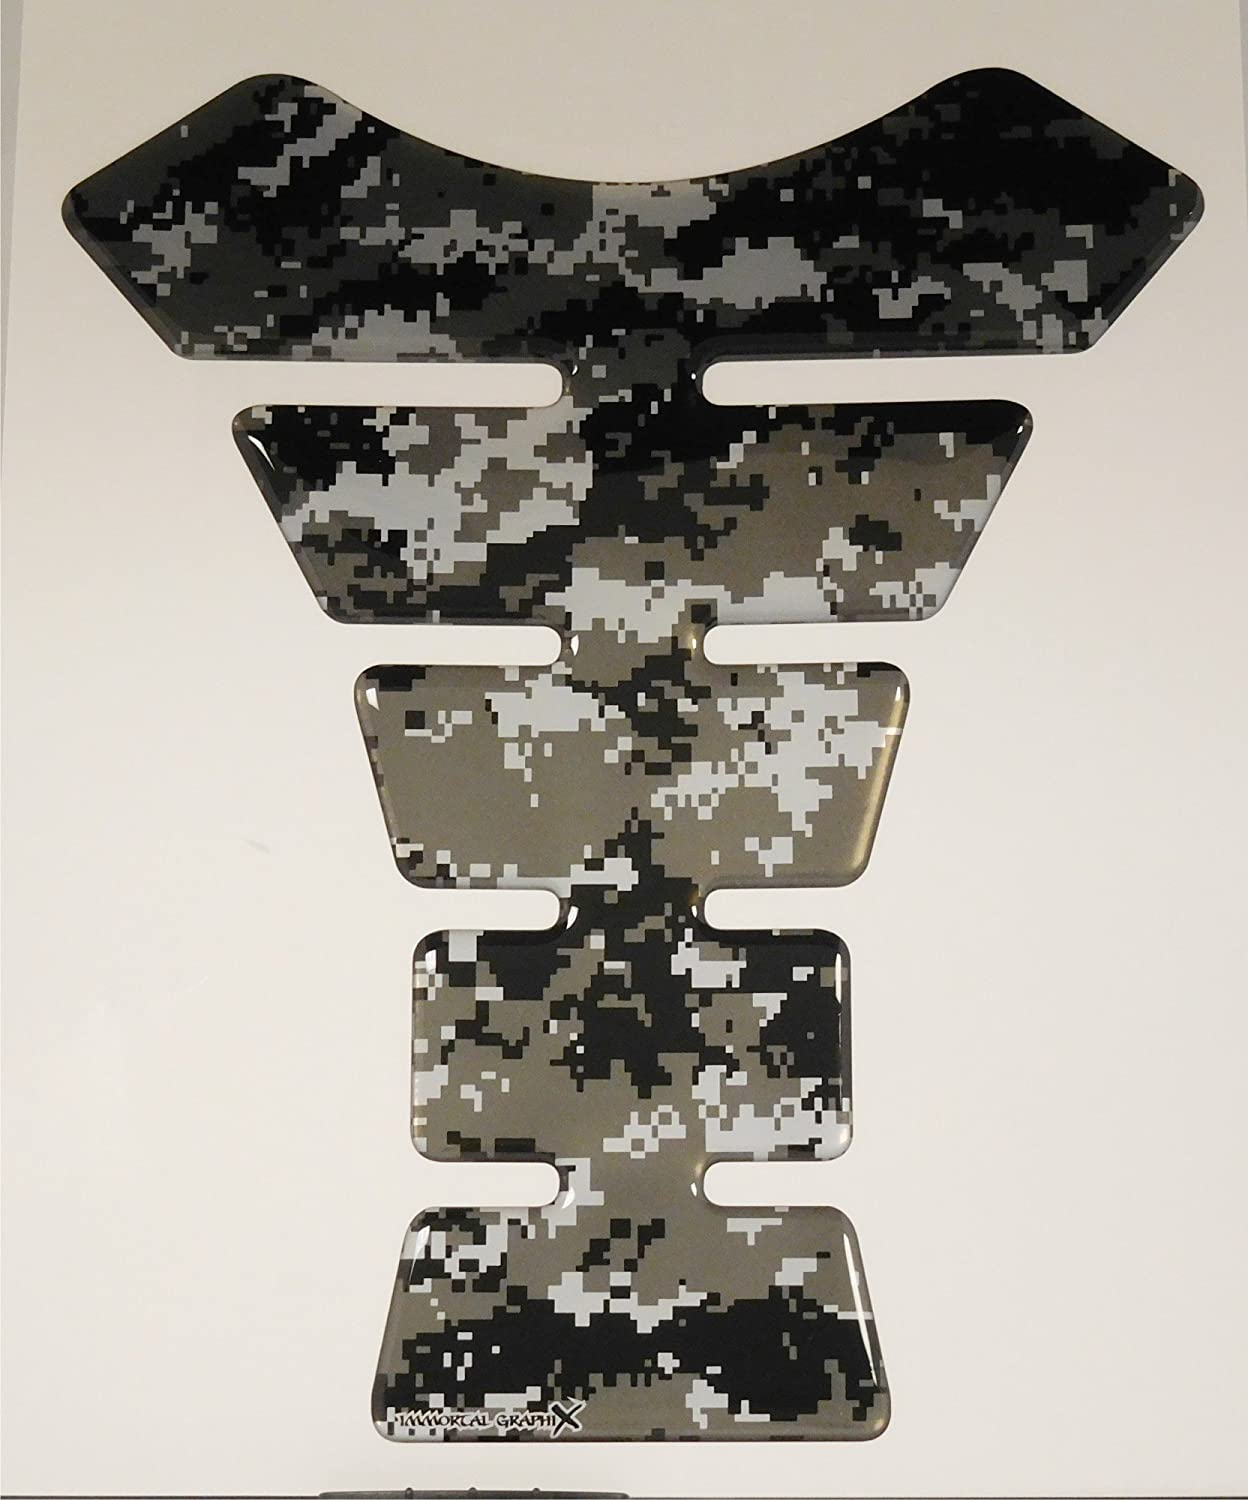 Size is 8.5 tall x 6.9 wide Digital Camouflage Gray Motorcycle Tank Pad tankpad Gel Protector